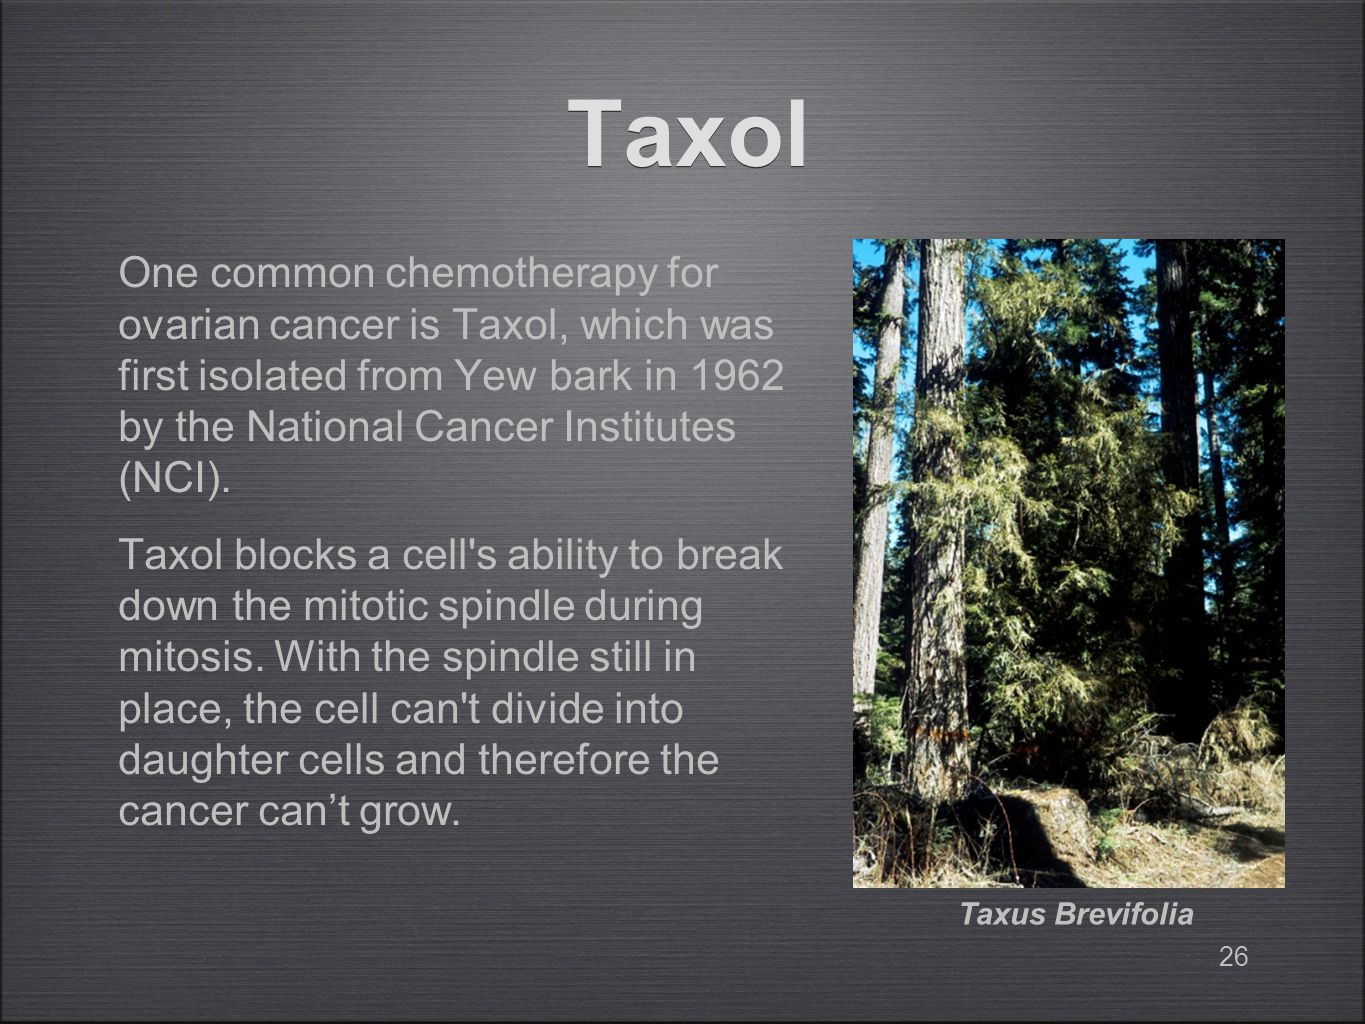 26 Taxol One common chemotherapy for ovarian cancer is Taxol, which was first isolated from Yew bark in 1962 by the National Cancer Institutes (NCI).